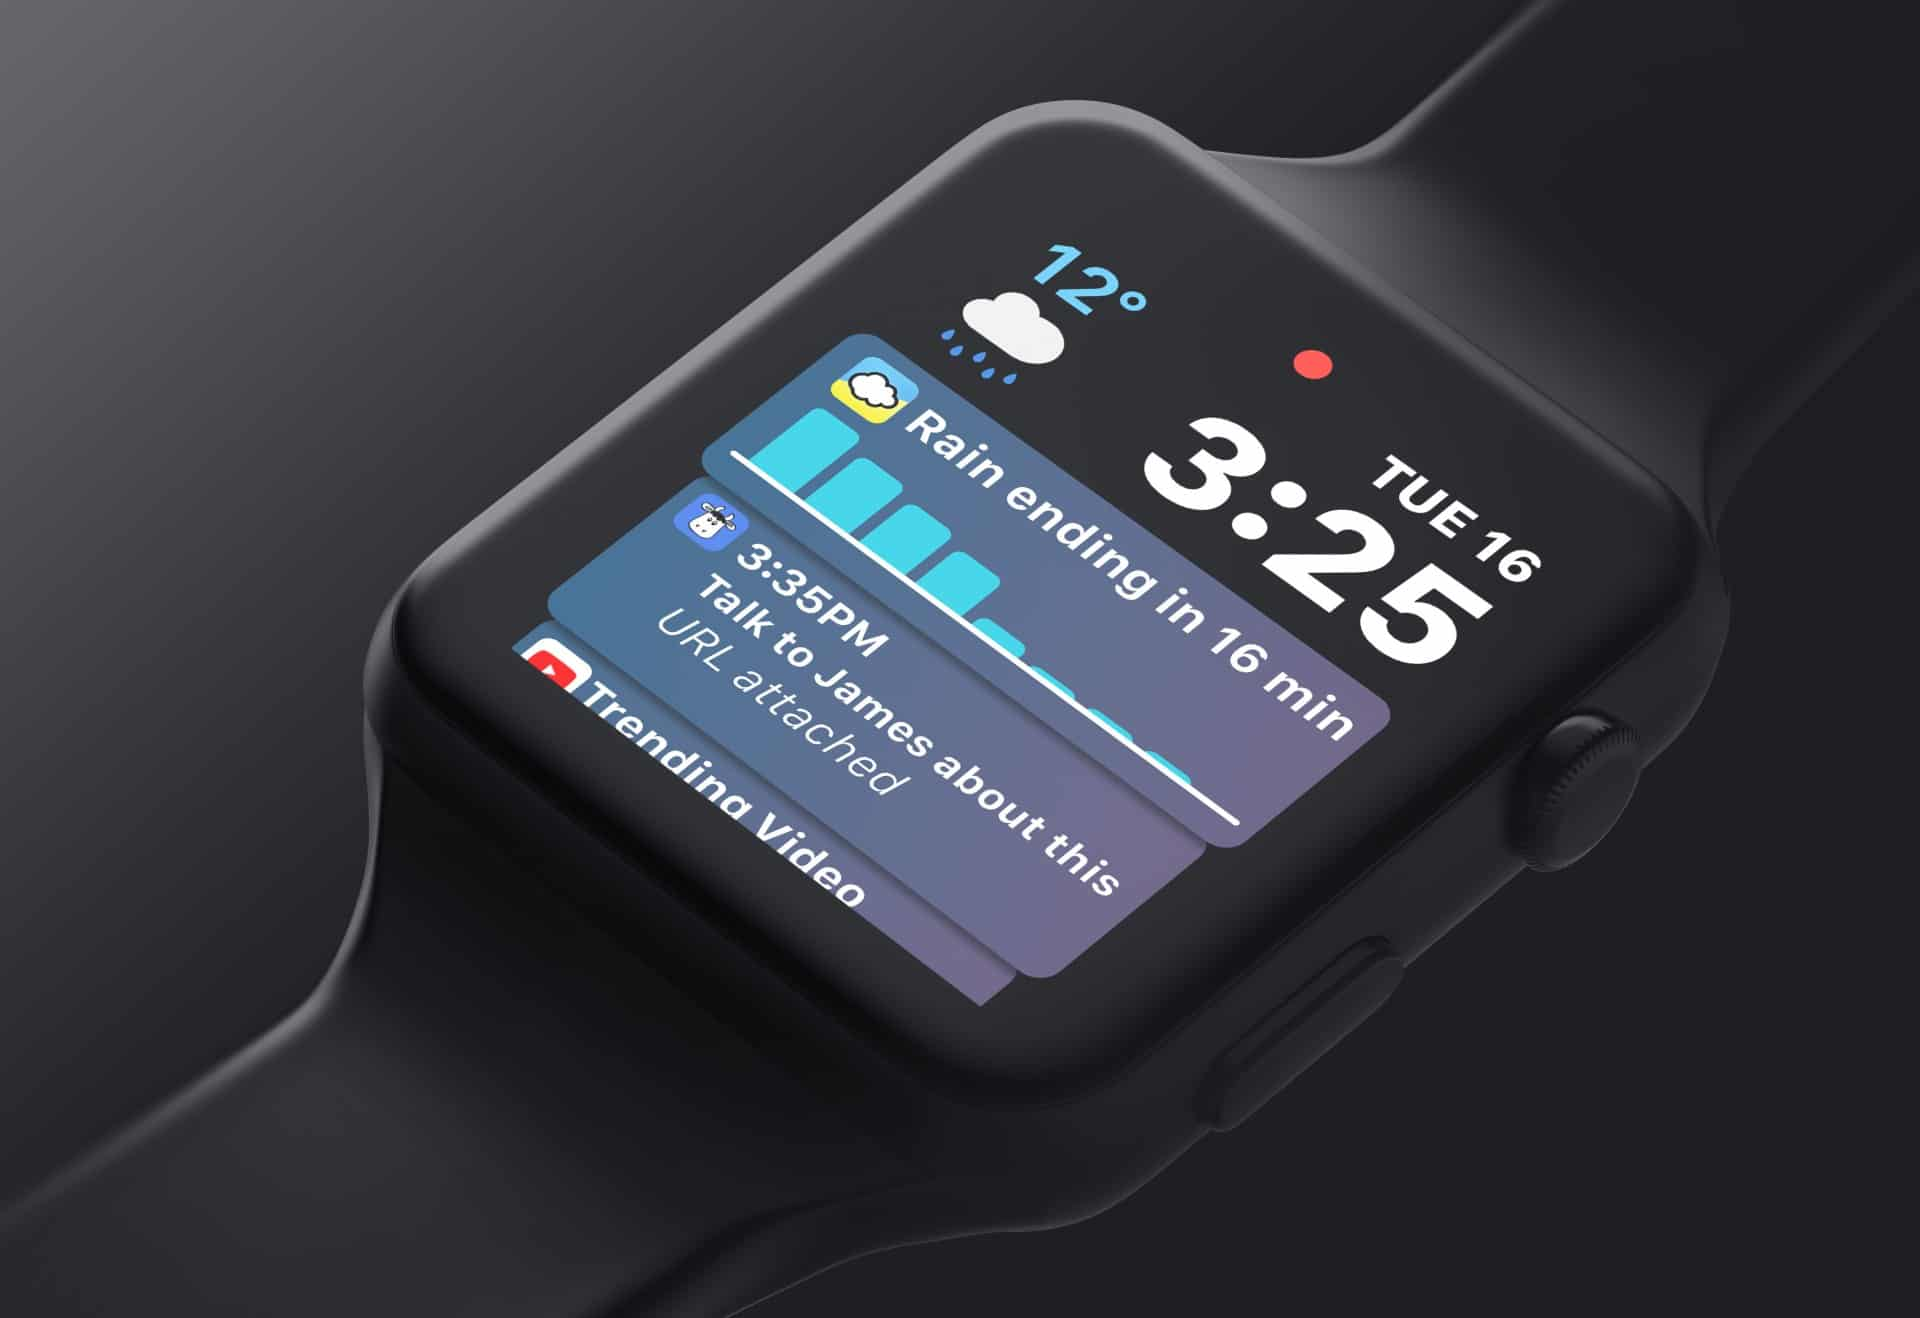 WatchOS 5 Concept Brings Extra Info To Apple Watch Cult